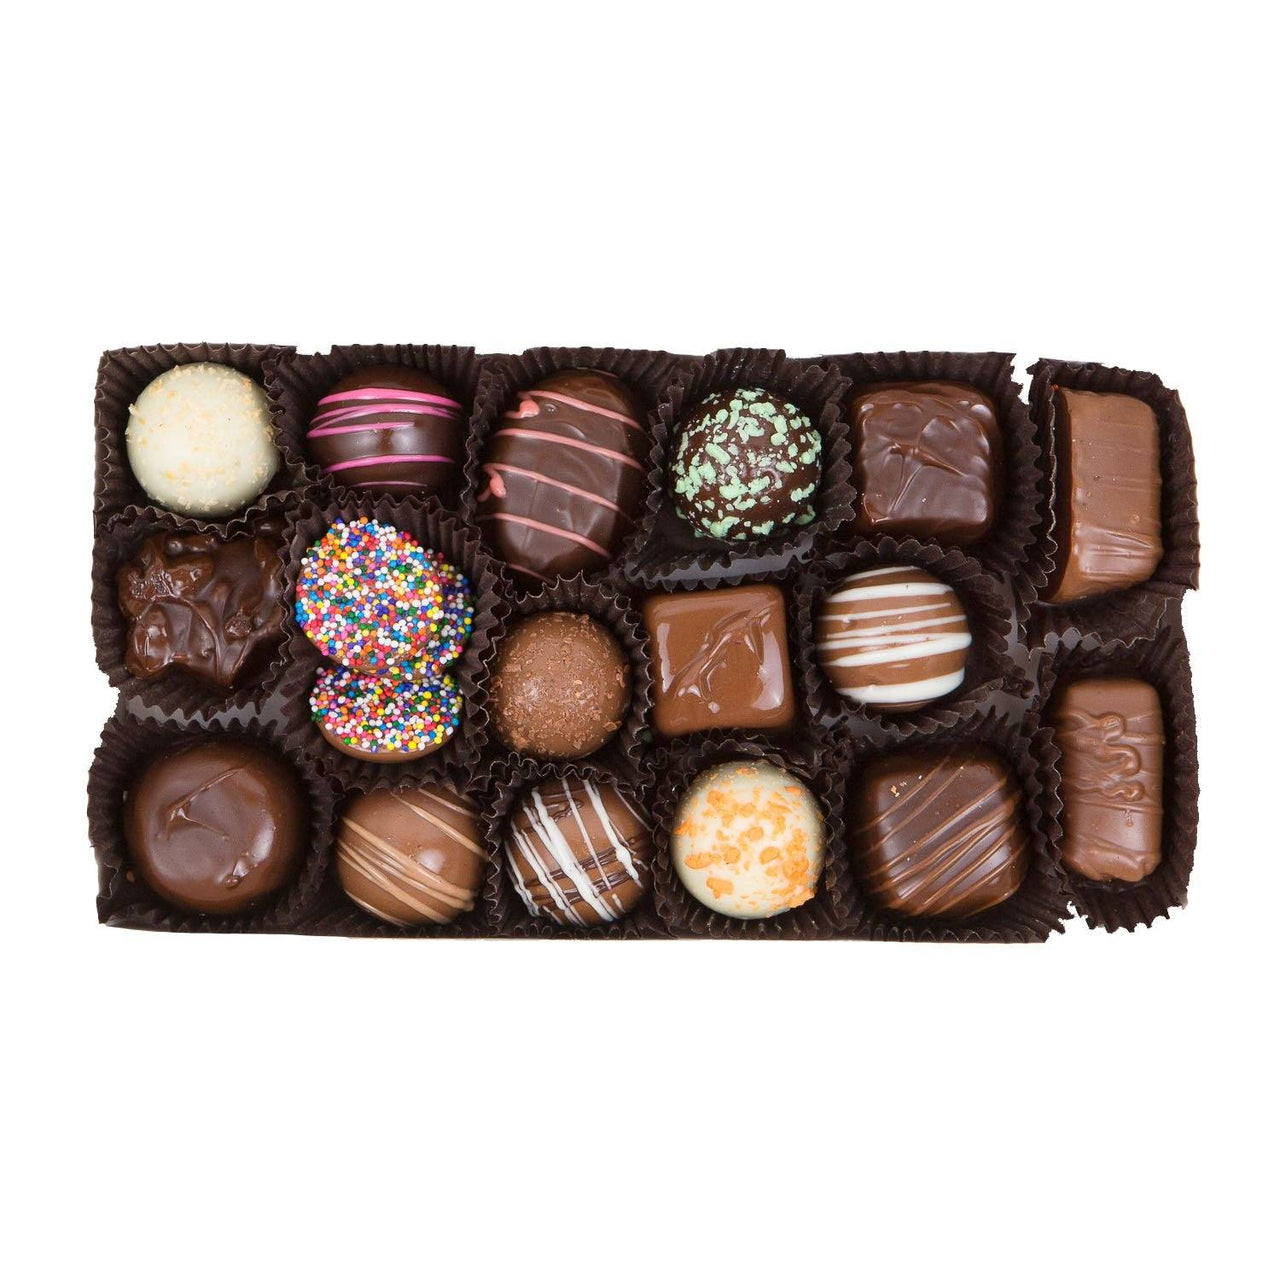 Family Gift Ideas - Assorted Chocolate Gift Box - Jackie's Chocolate